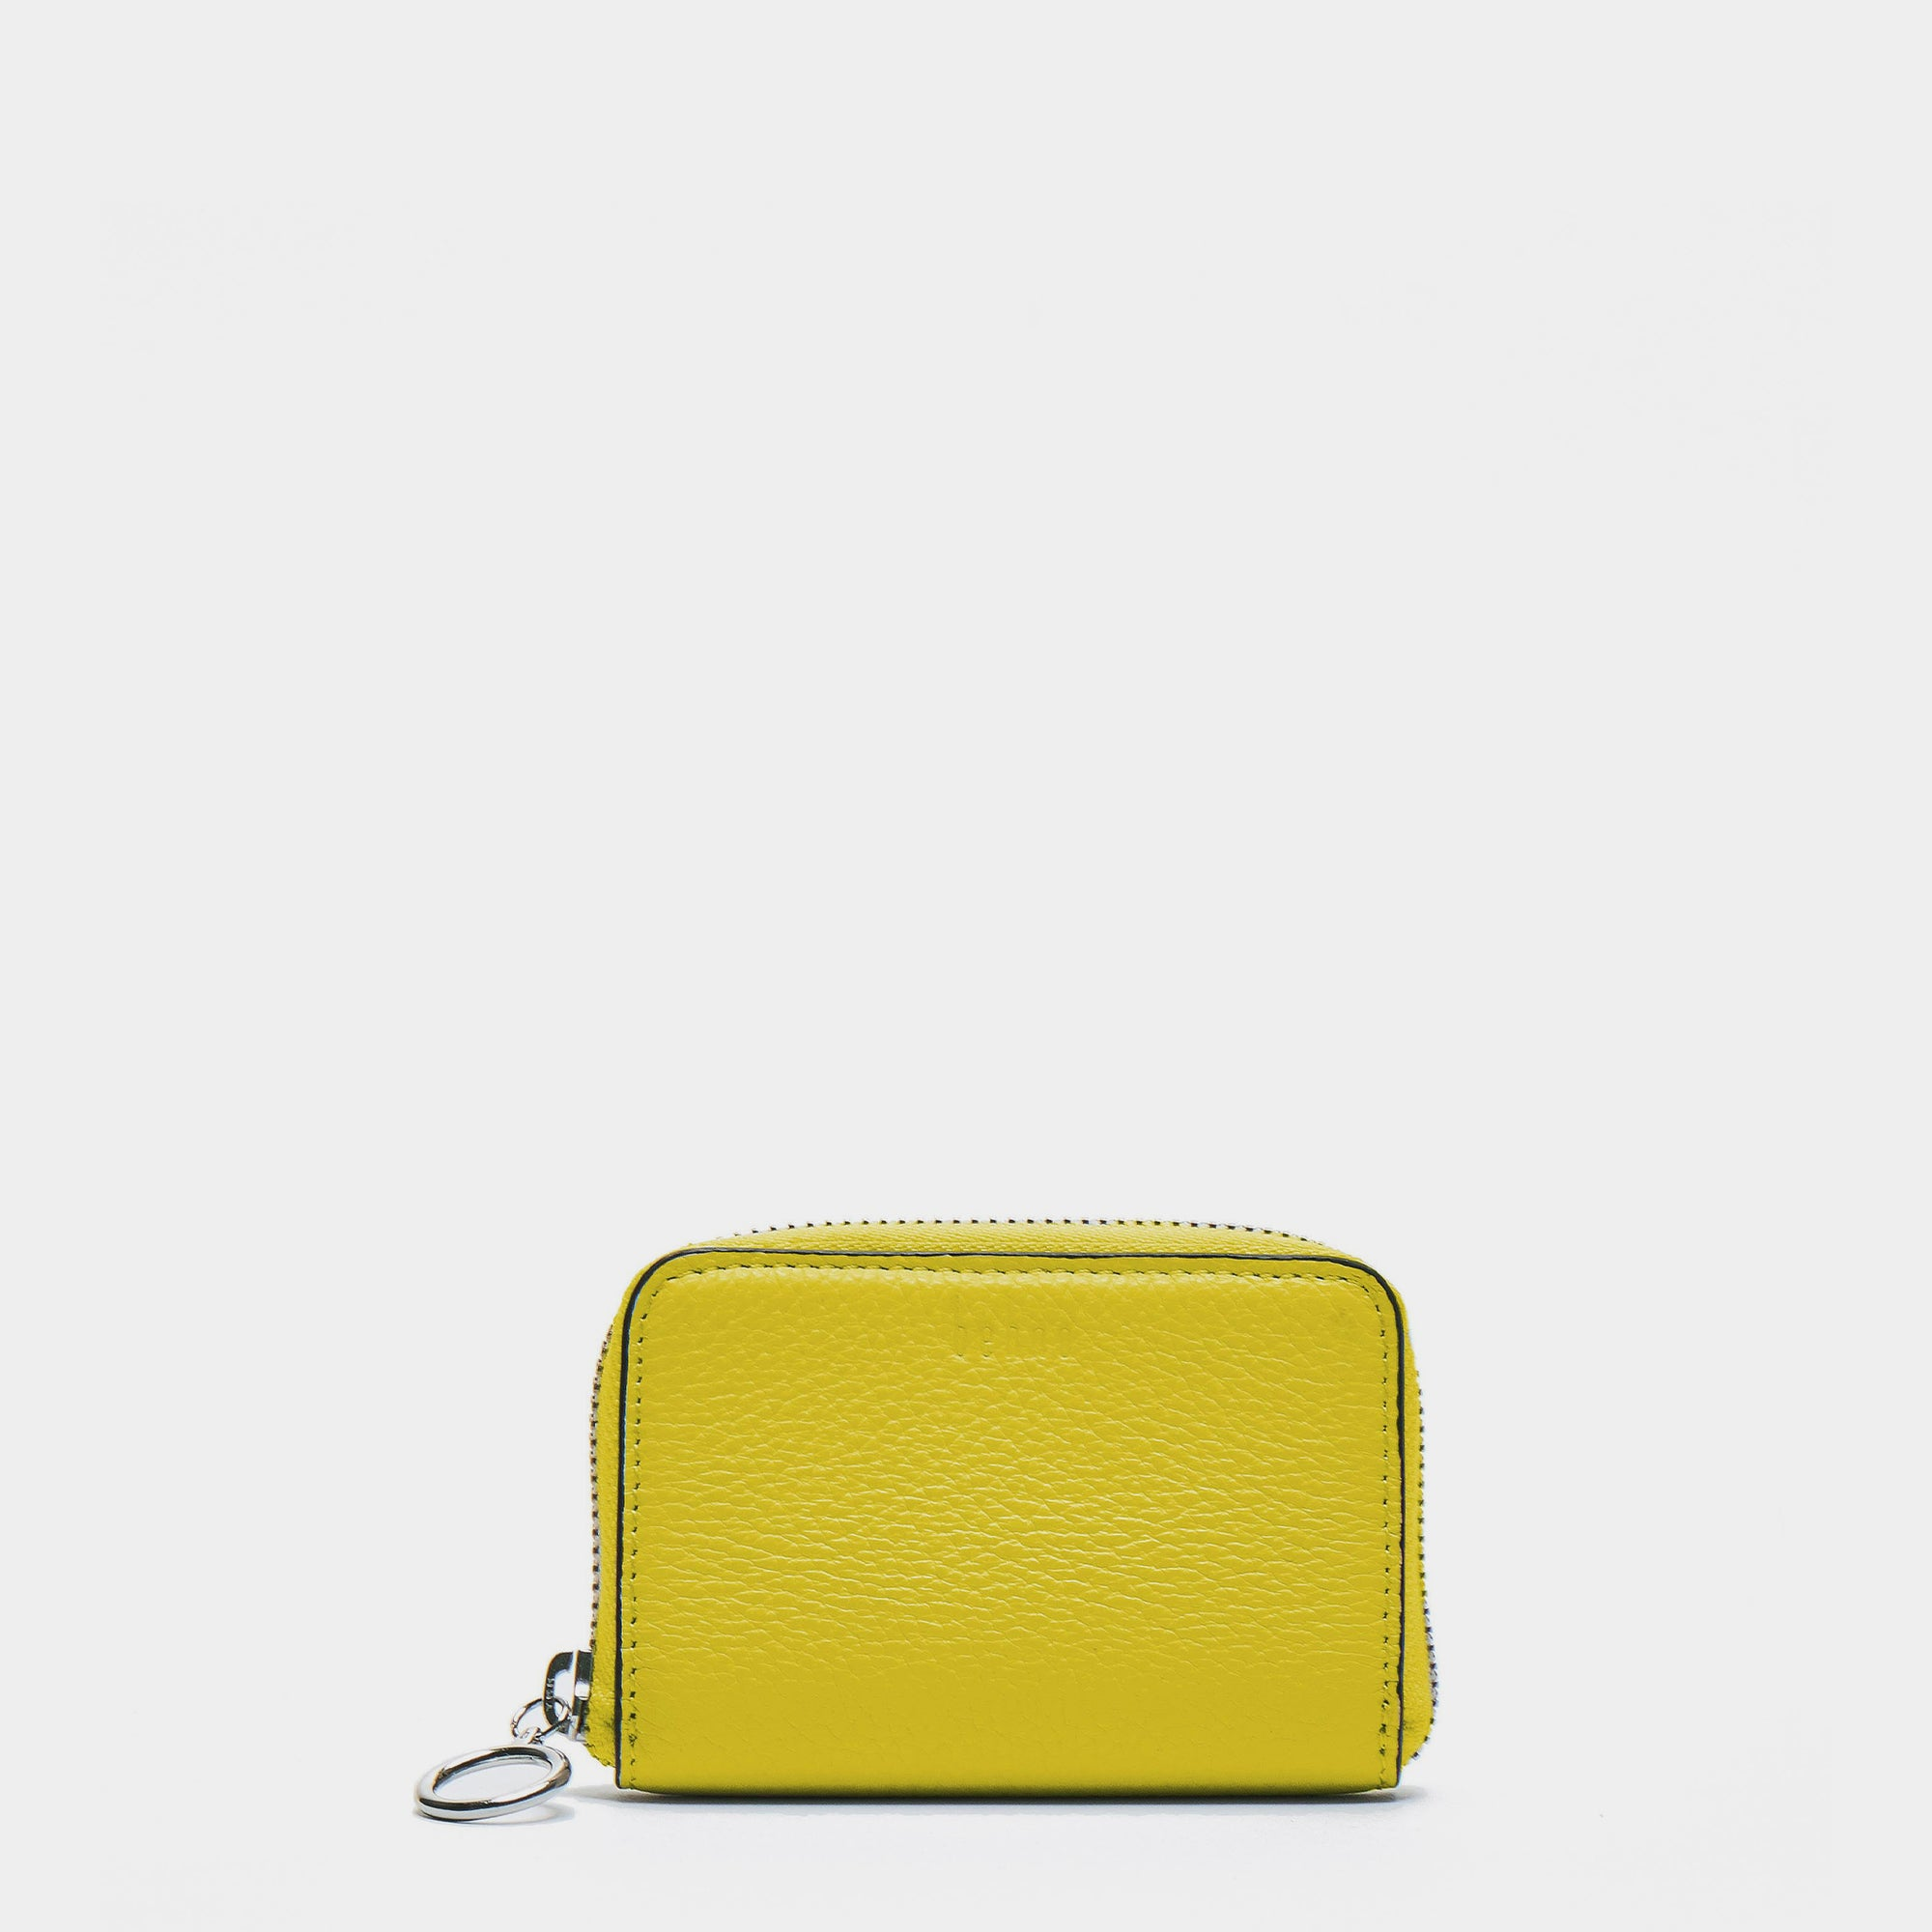 DEVON WALLET PEBBLE YELLOW